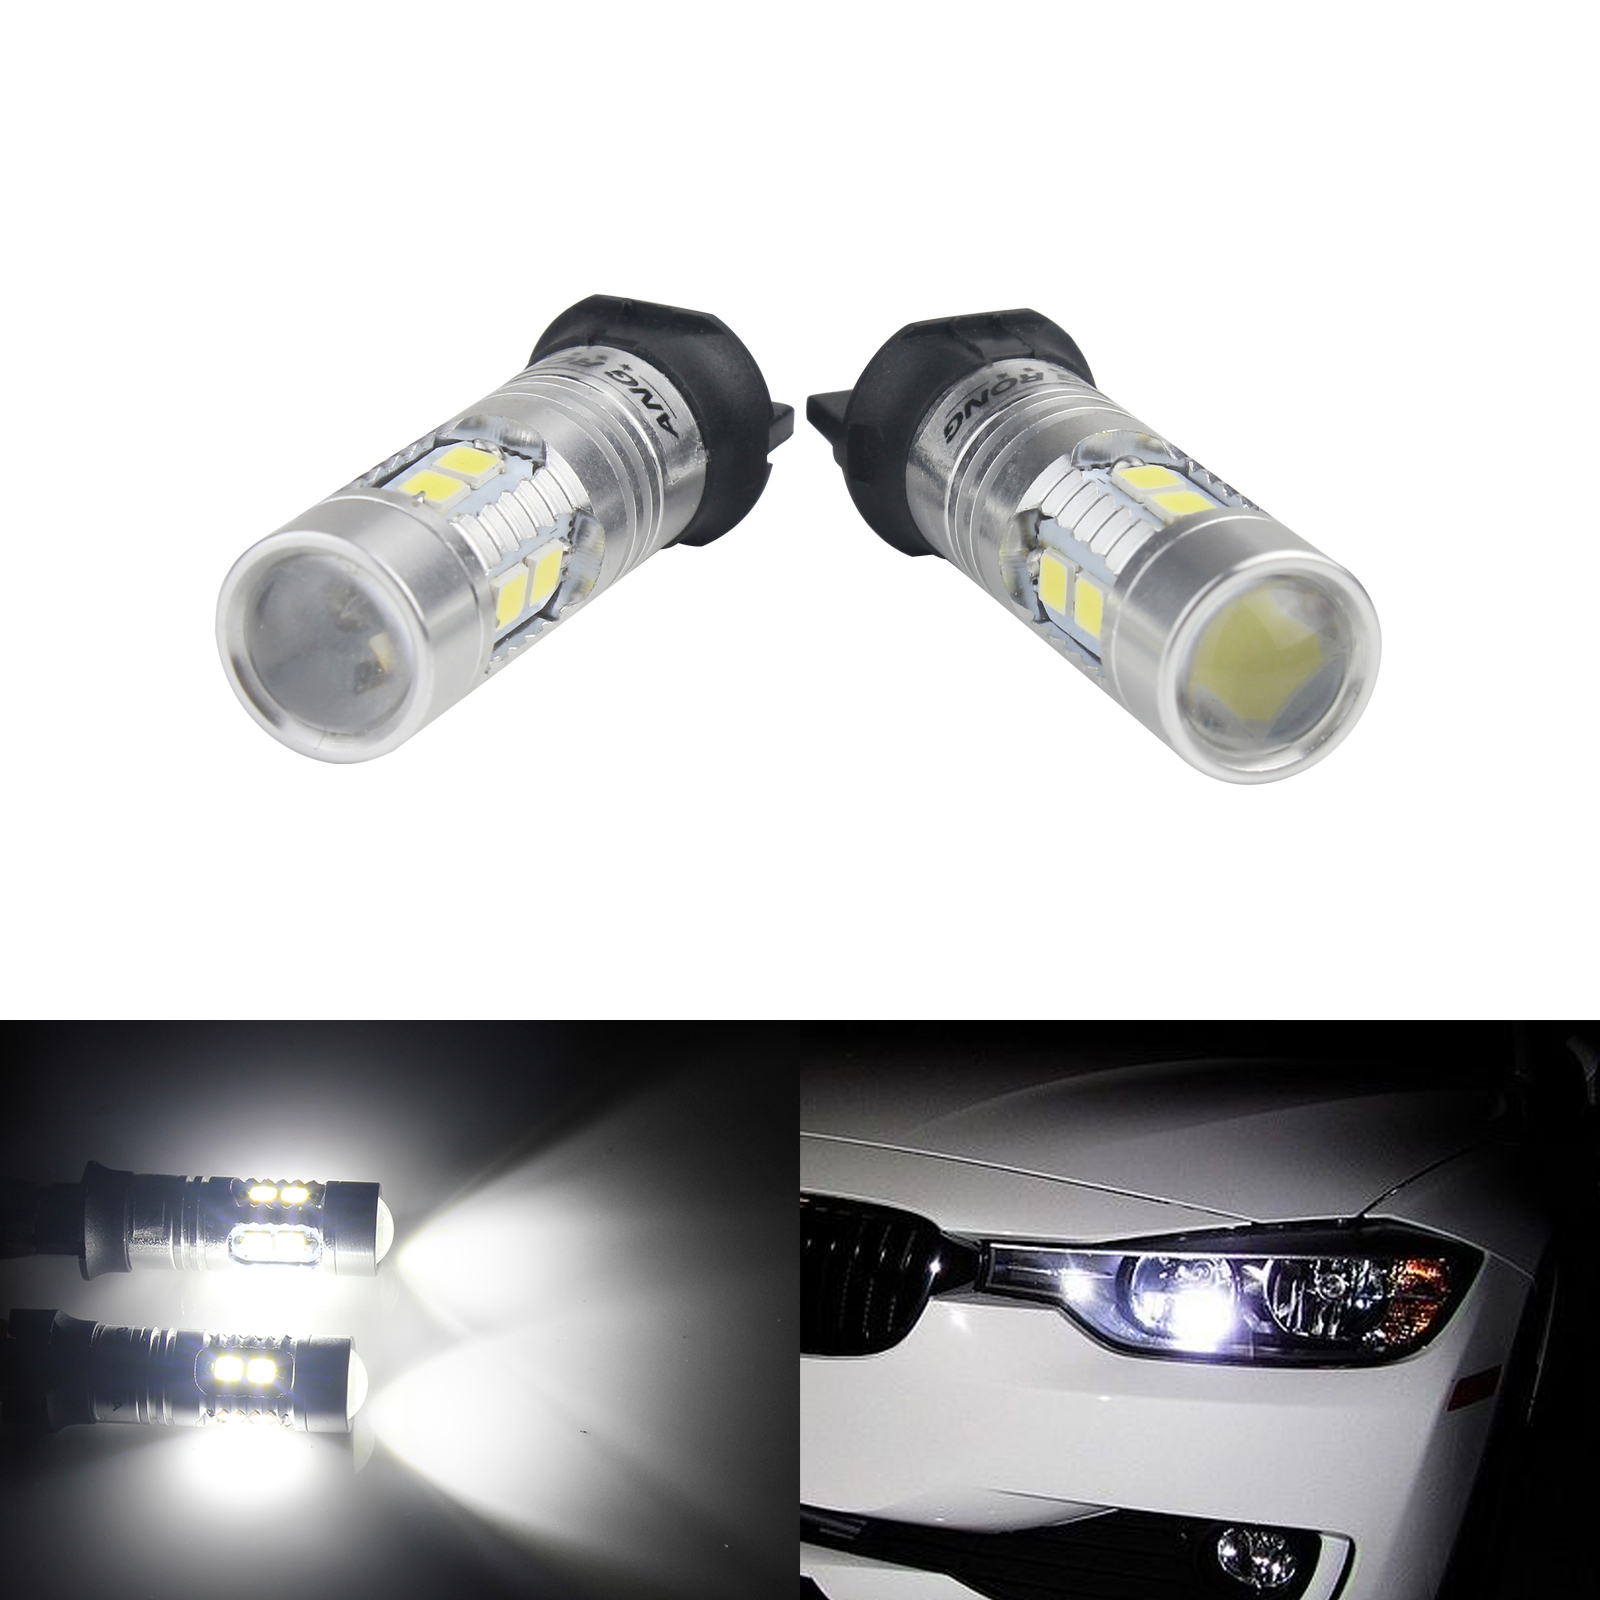 ANGRONG 2 x SAMSUNG SMD 10 LED High Power PW24W <font><b>PWY24W</b></font> DRL Daytime Running Light White image